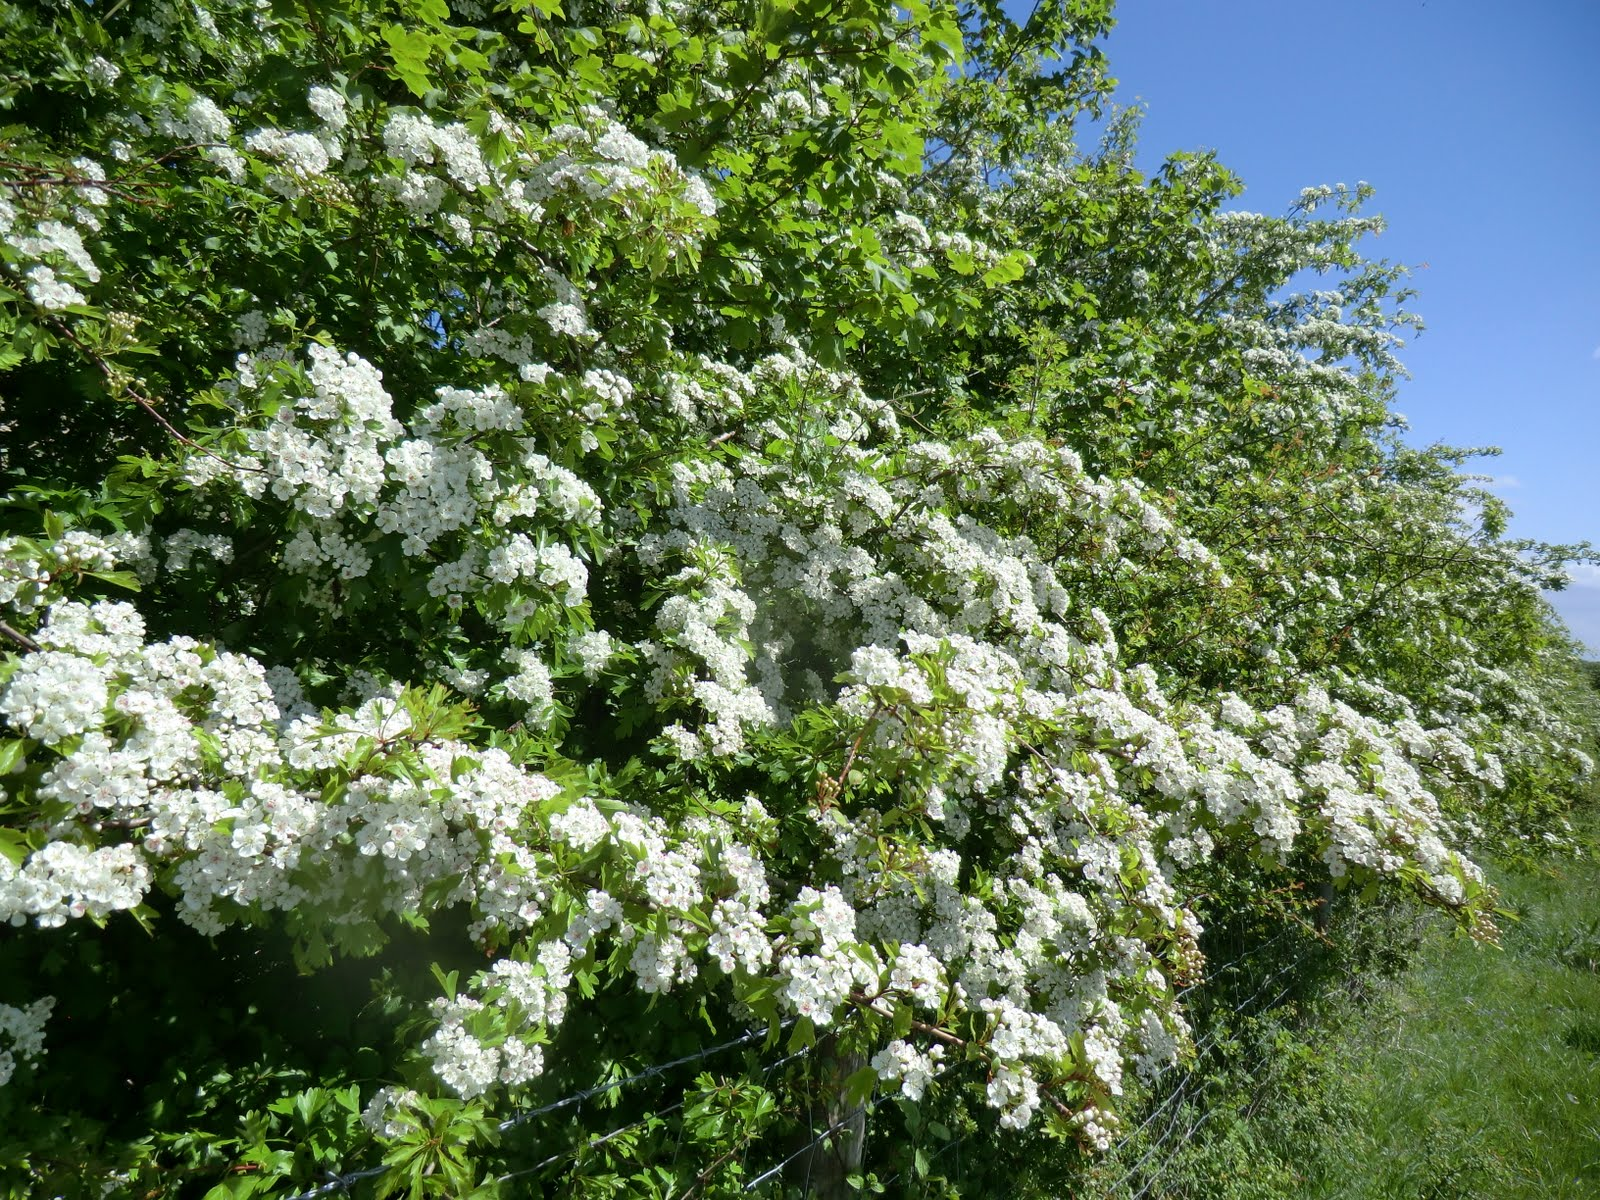 CIMG8130 Hawthorn hedgerow